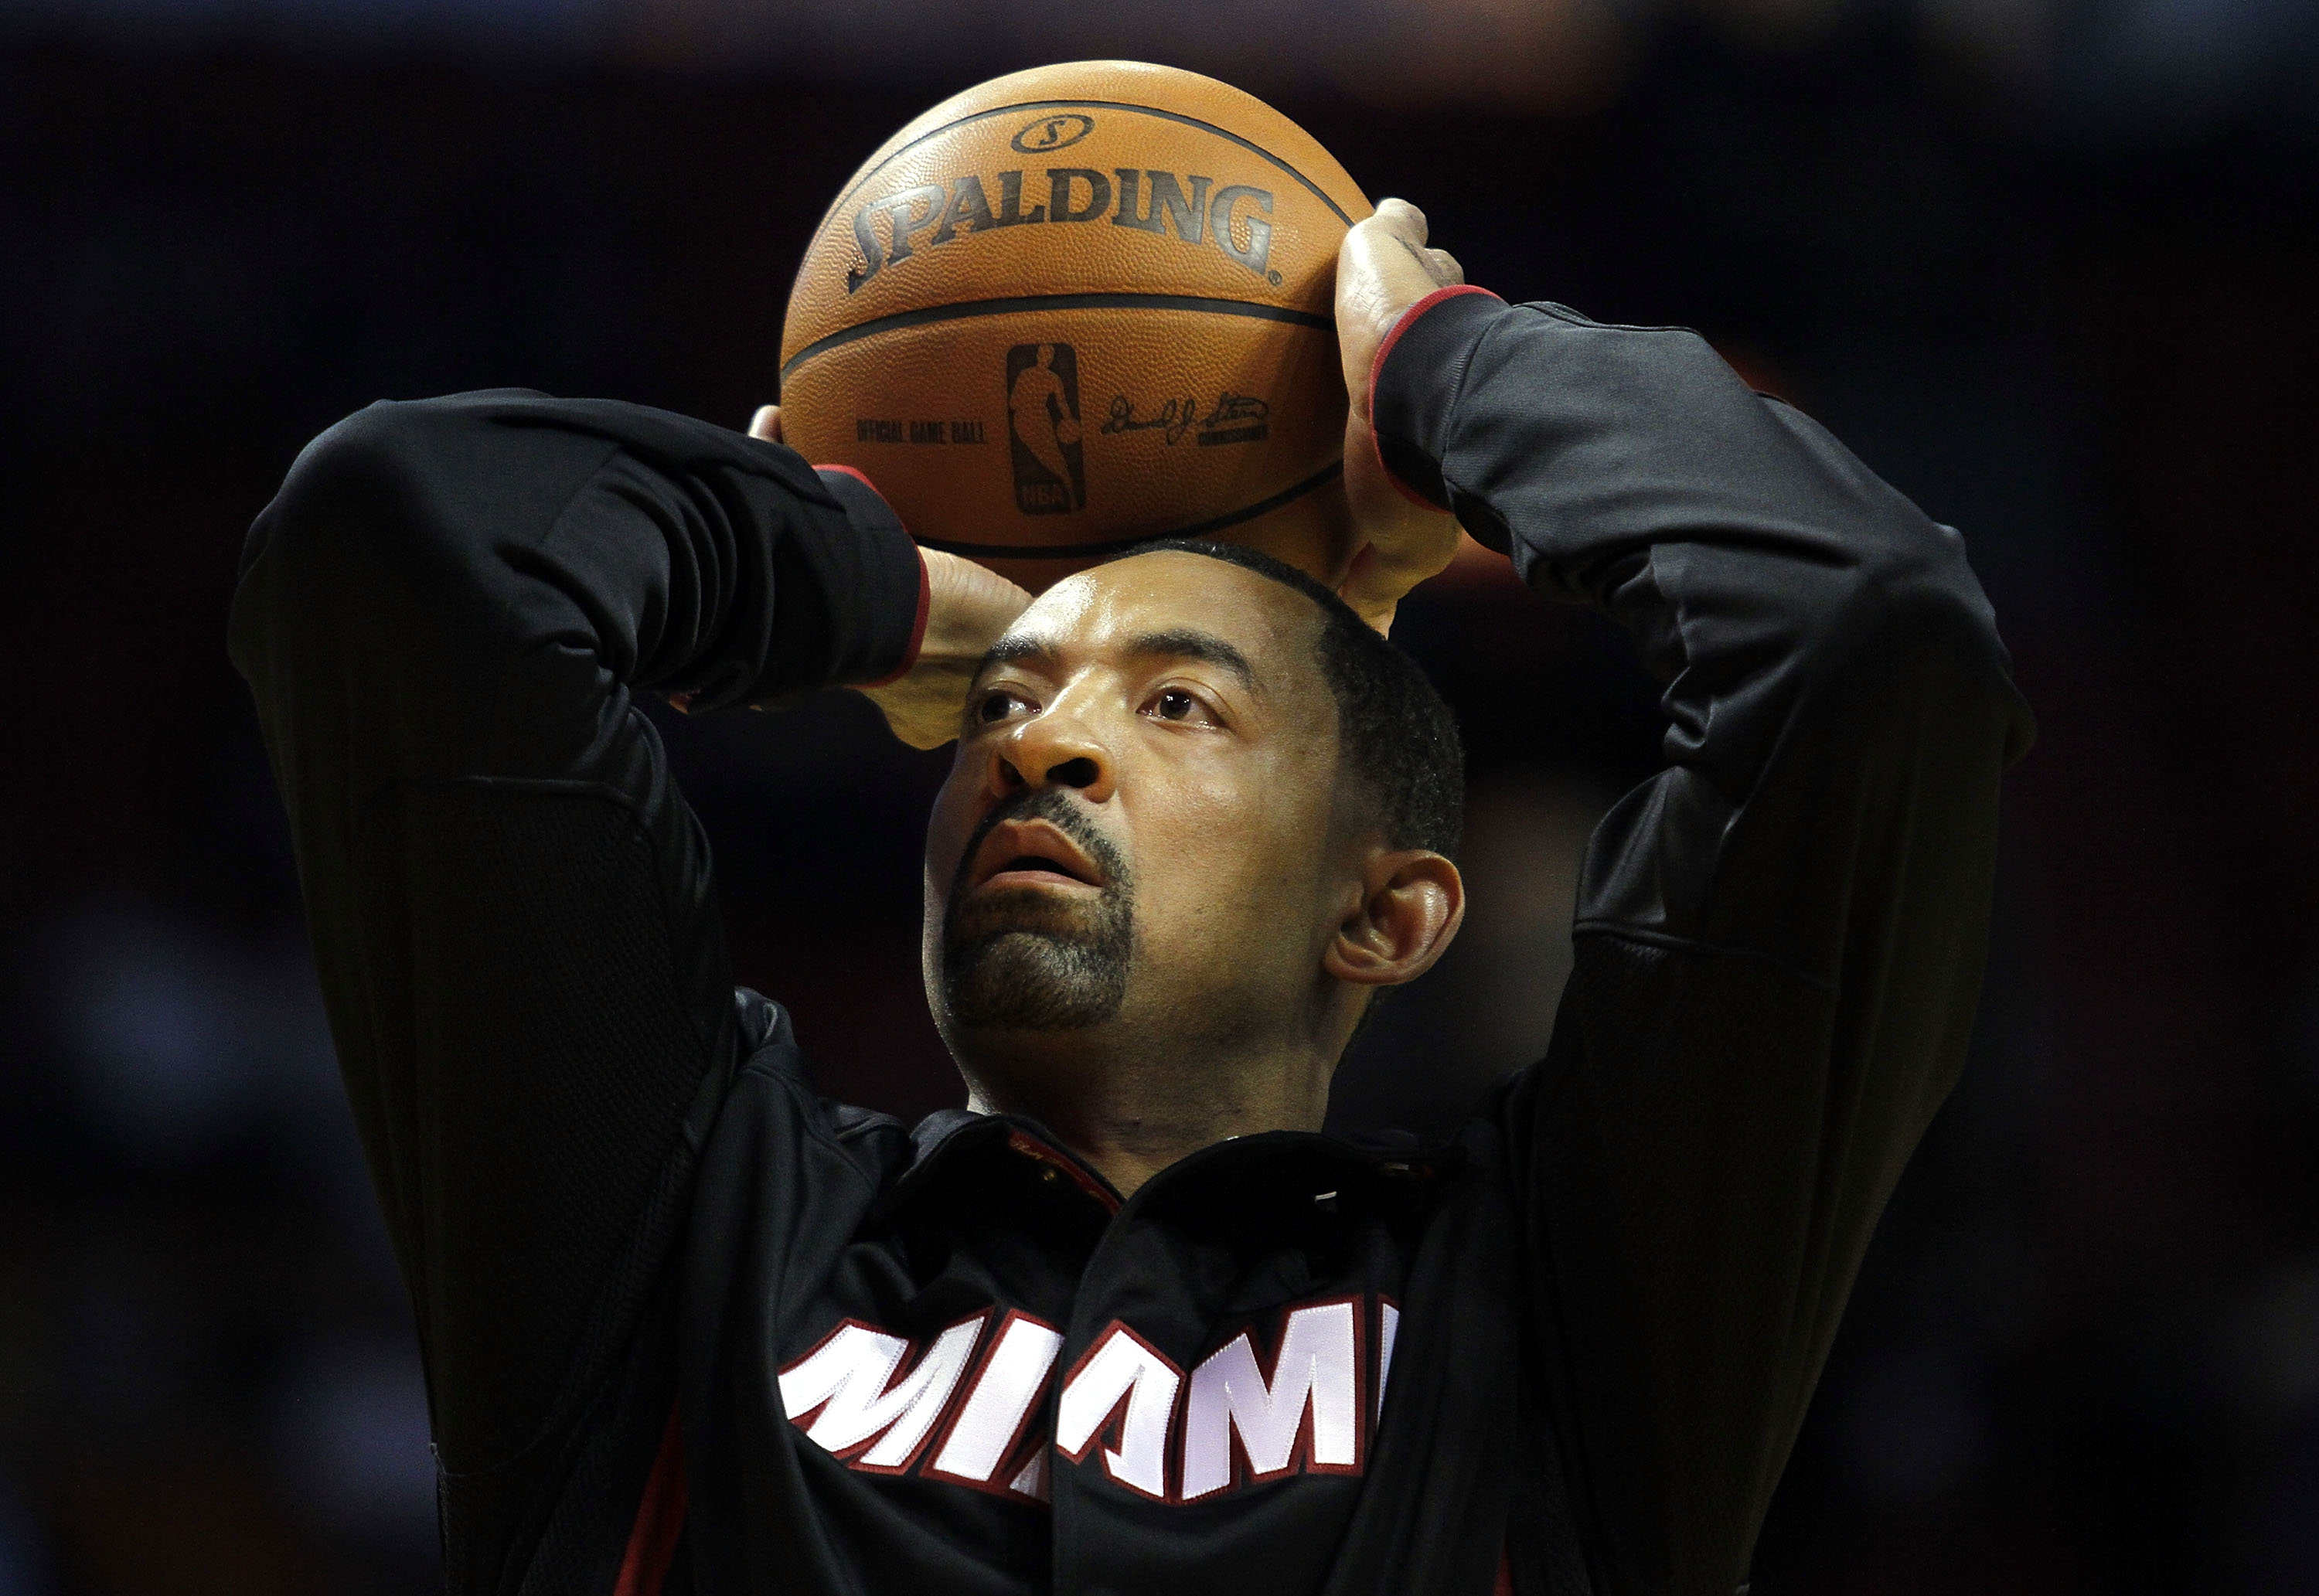 MIAMI - OCTOBER 18:  Forward Juwan Howard #5 of the Miami Heat prepares to face the Charlotte Bobcats on October 18, 2010 at American Airlines Arena in Miami, Florida. NOTE TO USER: User expressly acknowledges and agrees that, by downloading and/or using